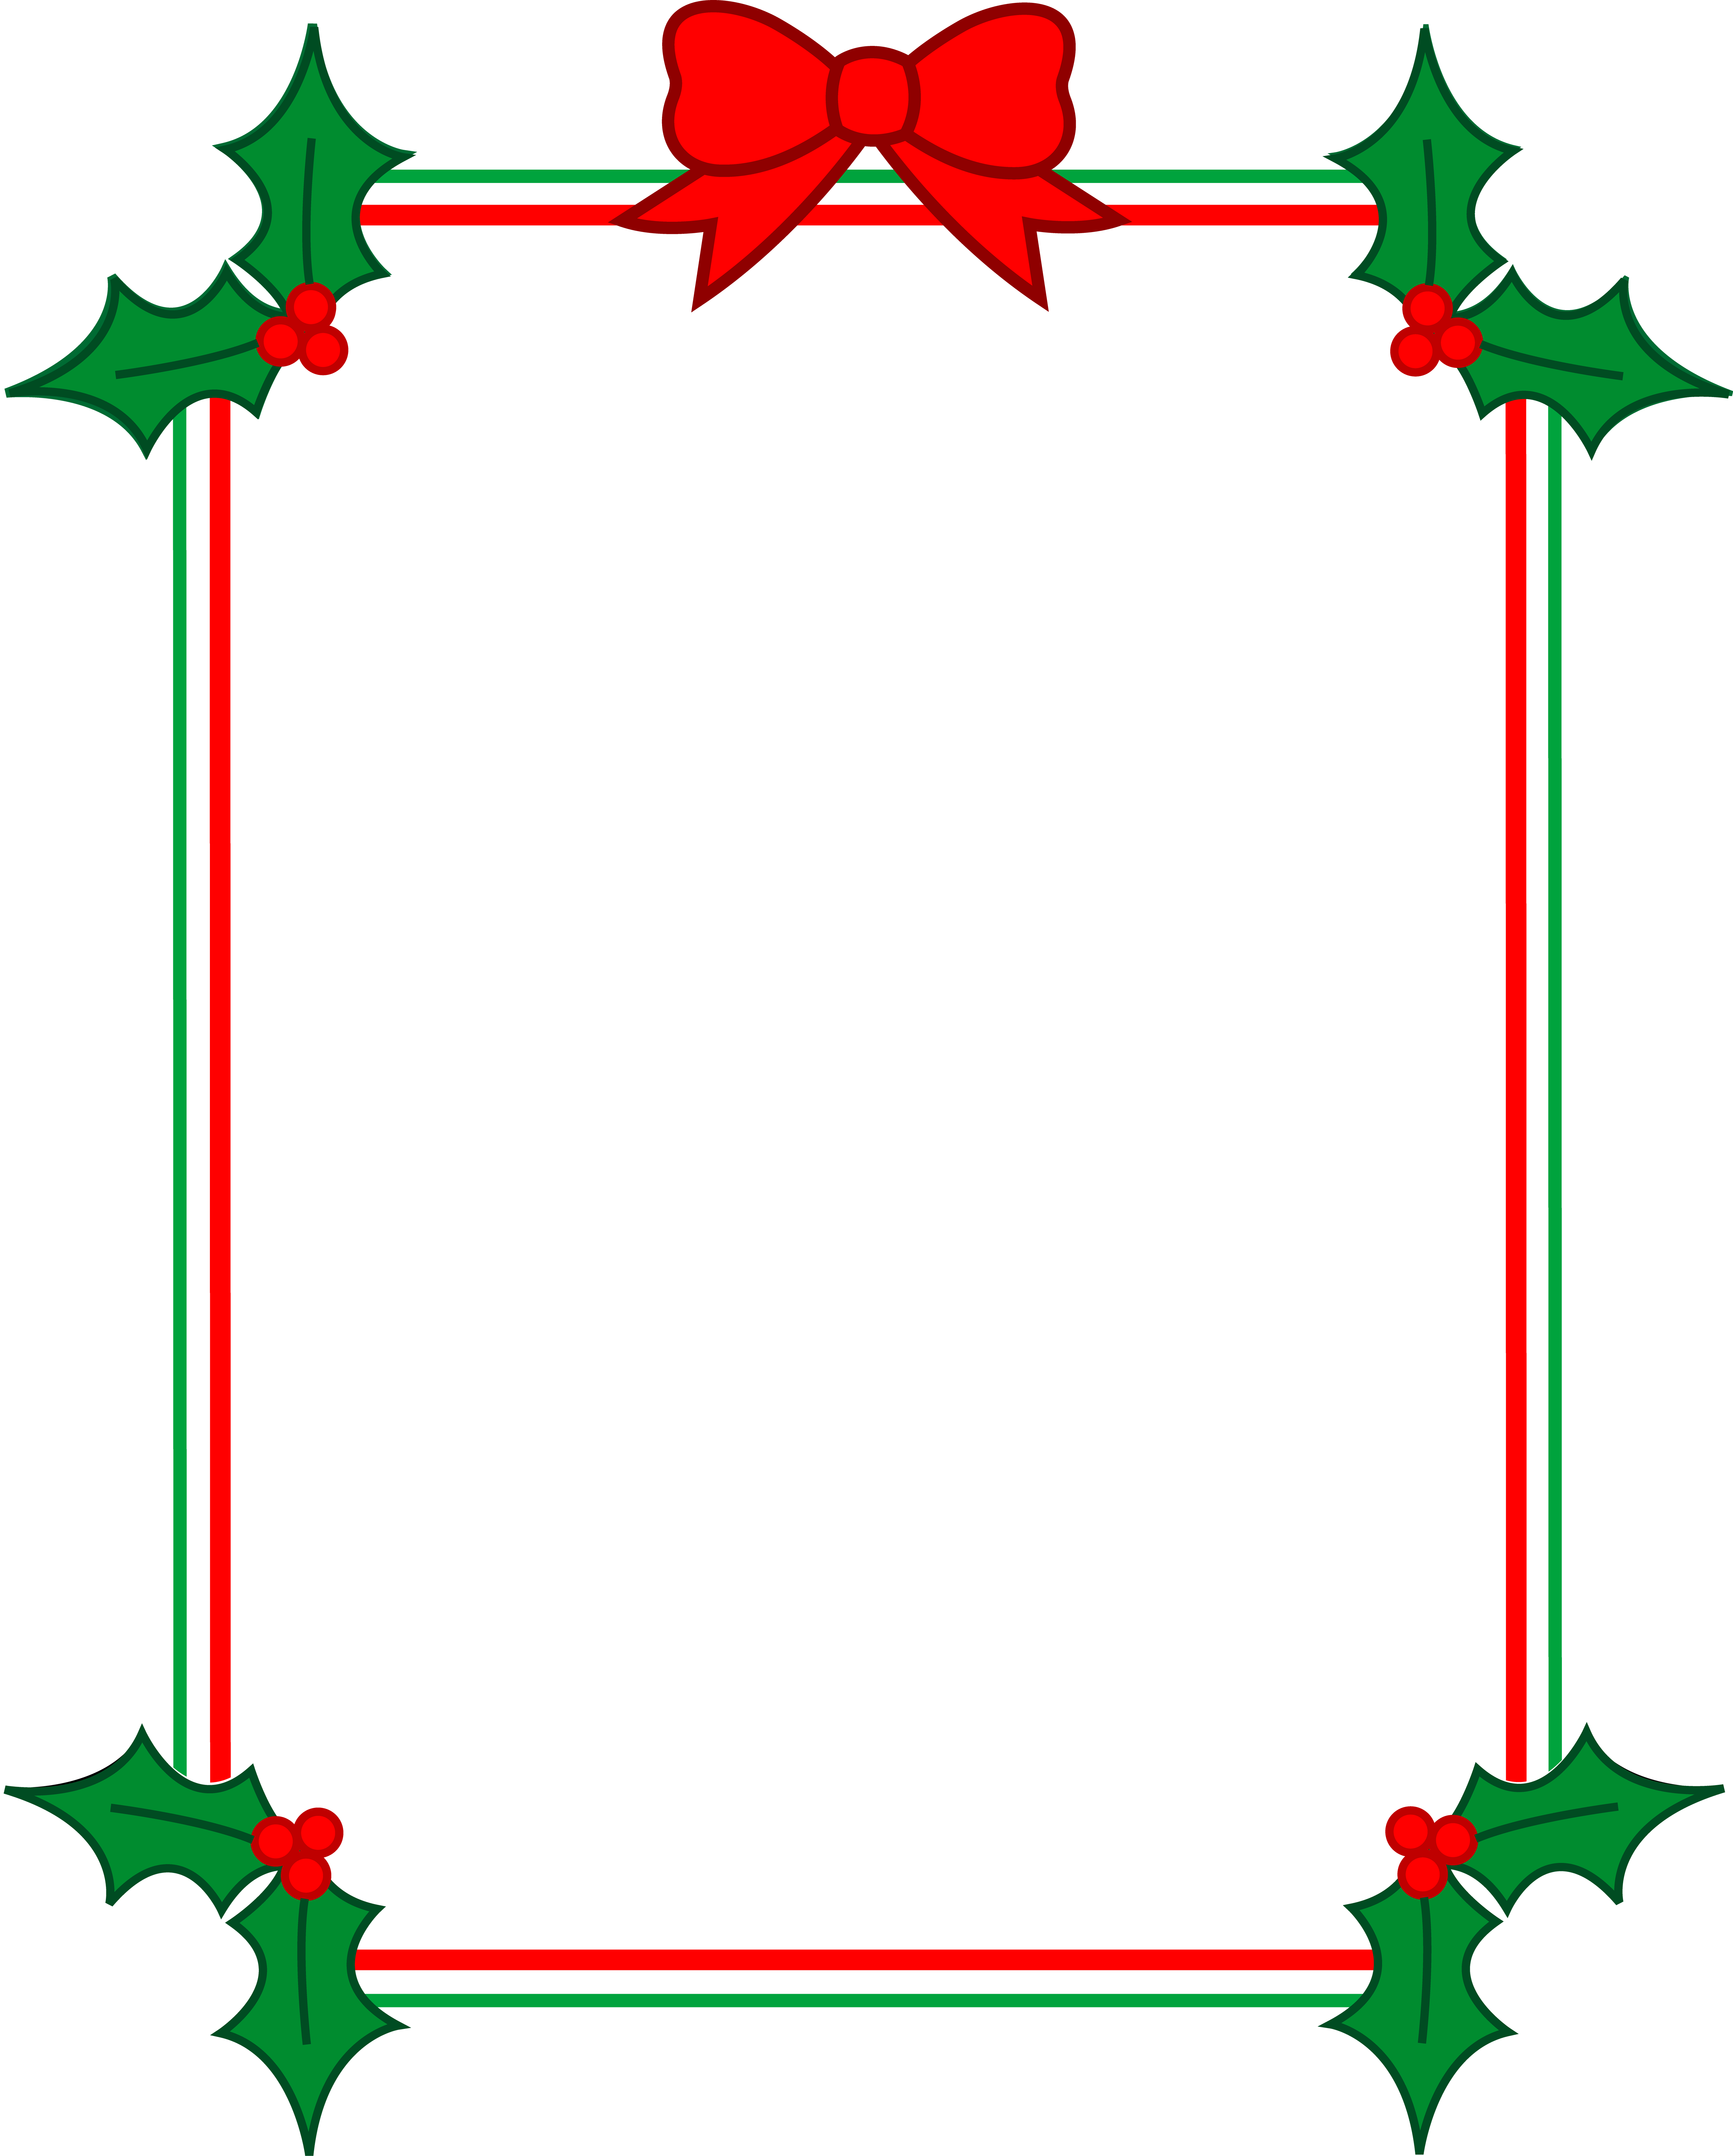 Free christmas frames and borders clipart clipart royalty free stock Christmas clipart free borders clipart images gallery for free ... clipart royalty free stock